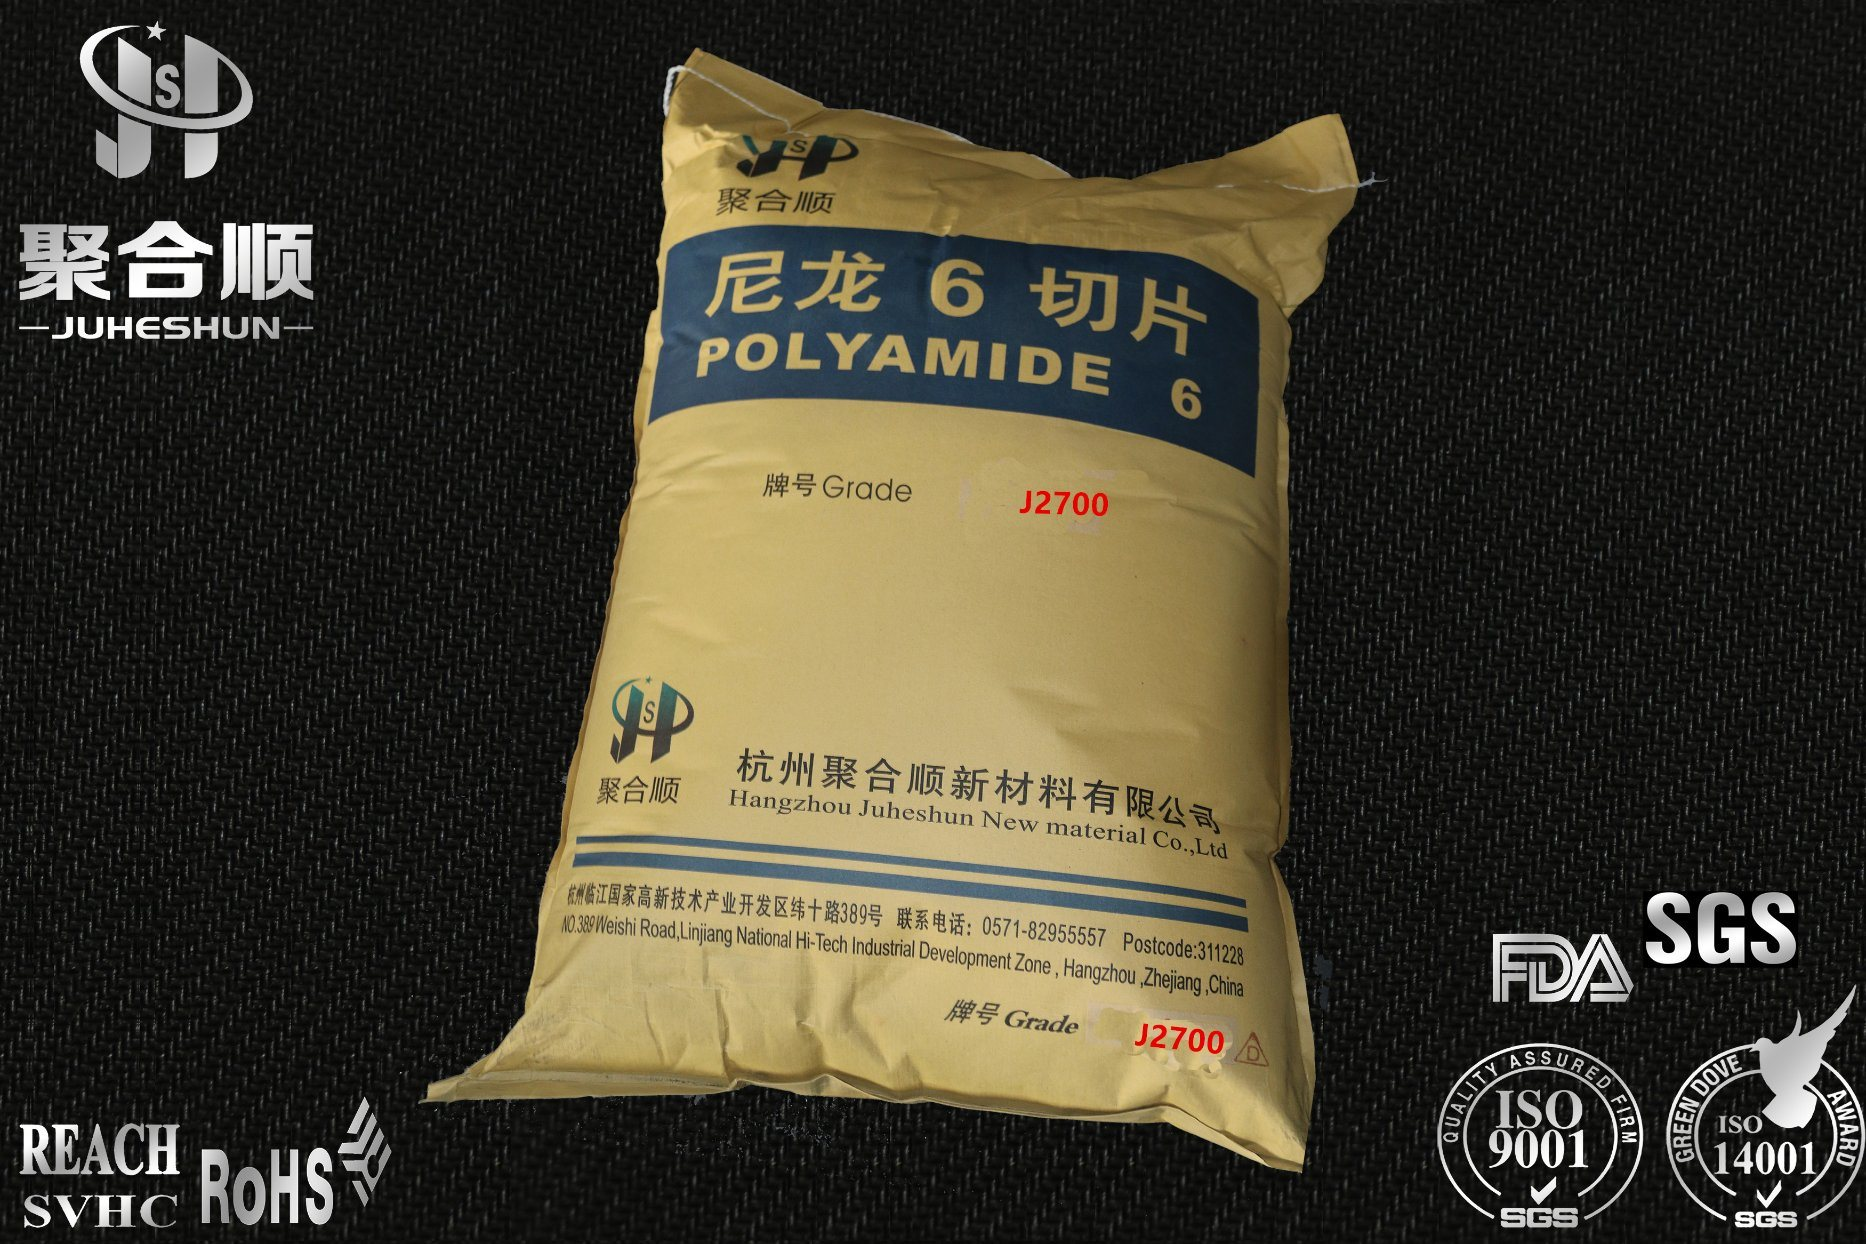 J2700/Nylon 6 Chips/Polyamide 6 Granules/Pellet/PA6 for Engineering Grade